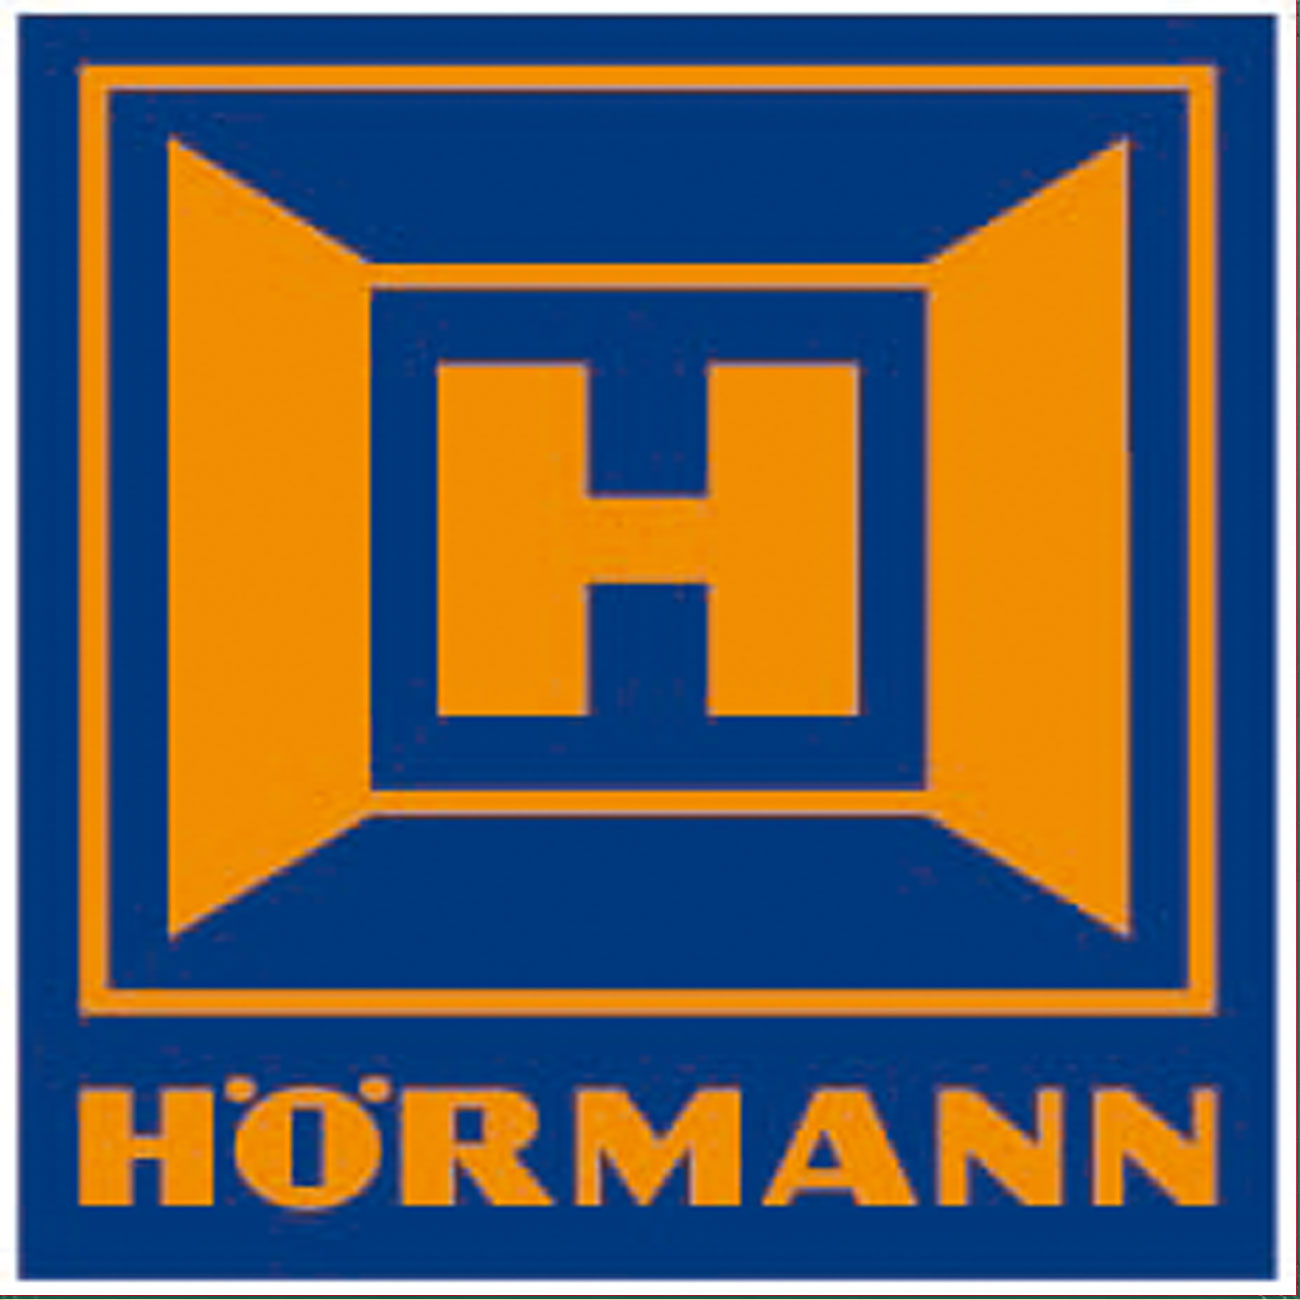 Hormann LTE Sectional logo